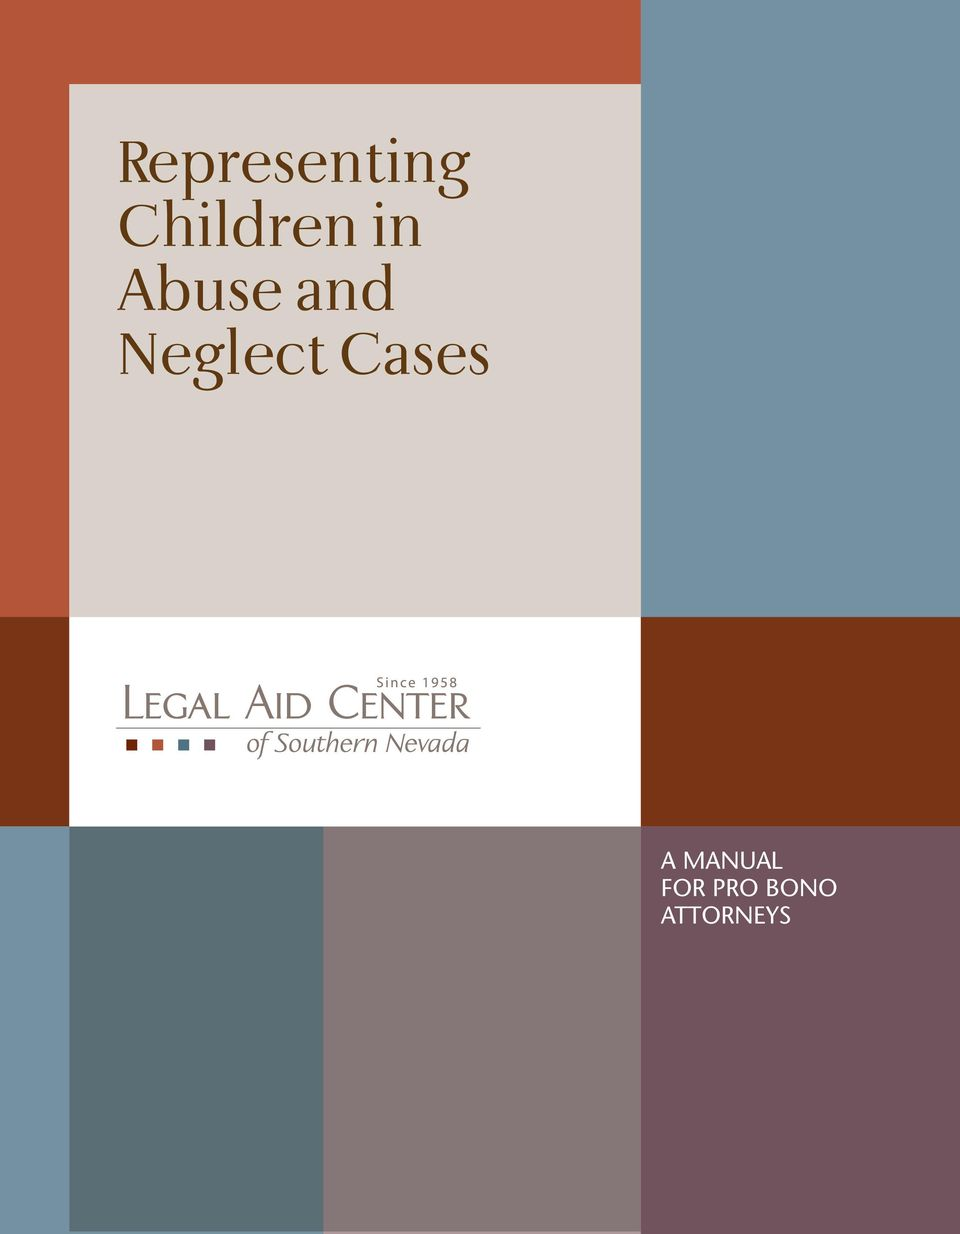 Representing Children in Abuse and Neglect Cases A MANUAL